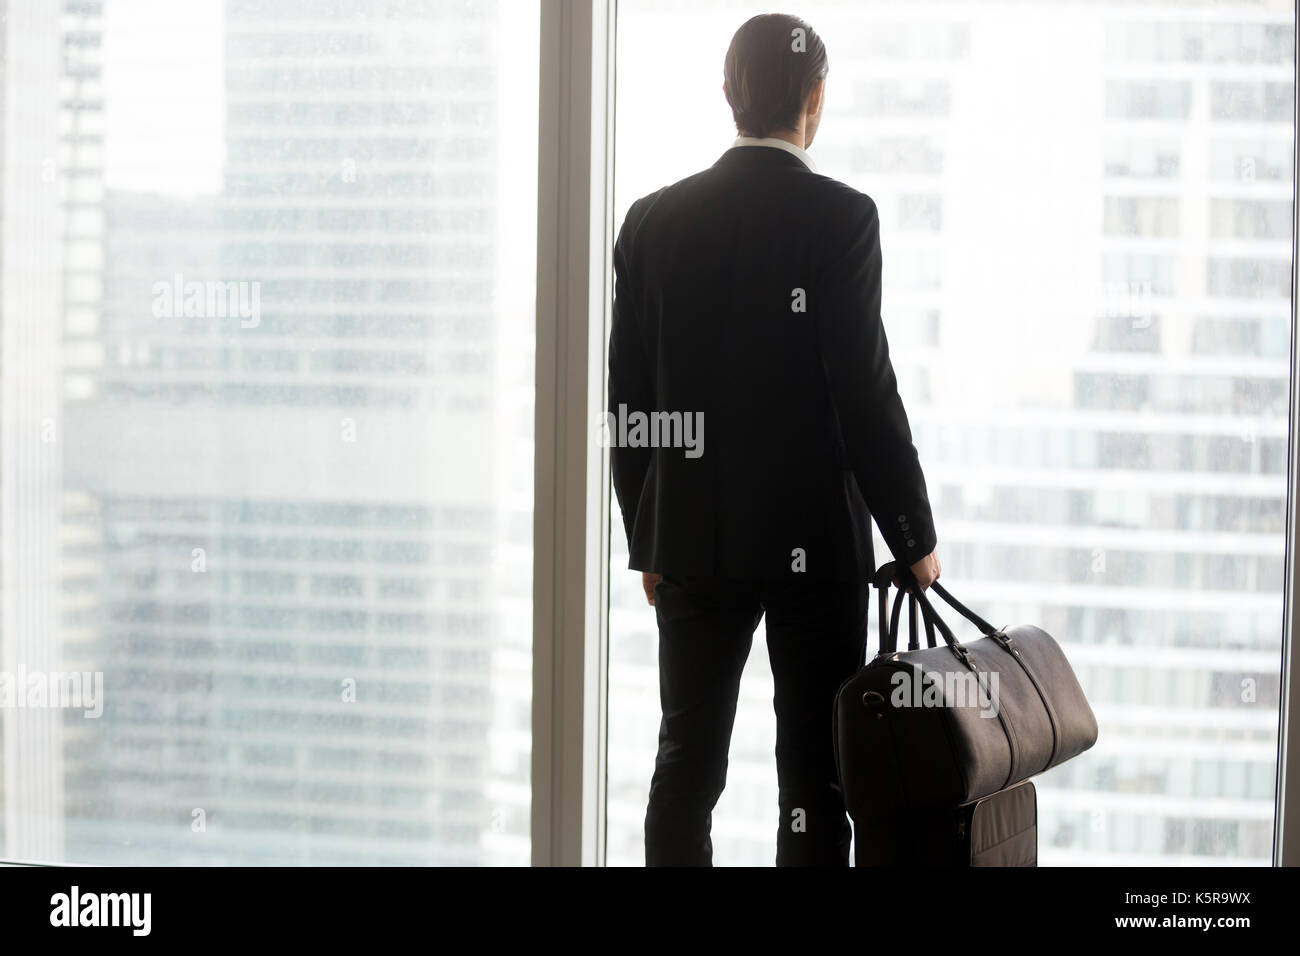 Businessman with luggage standing in front of large window. - Stock Image